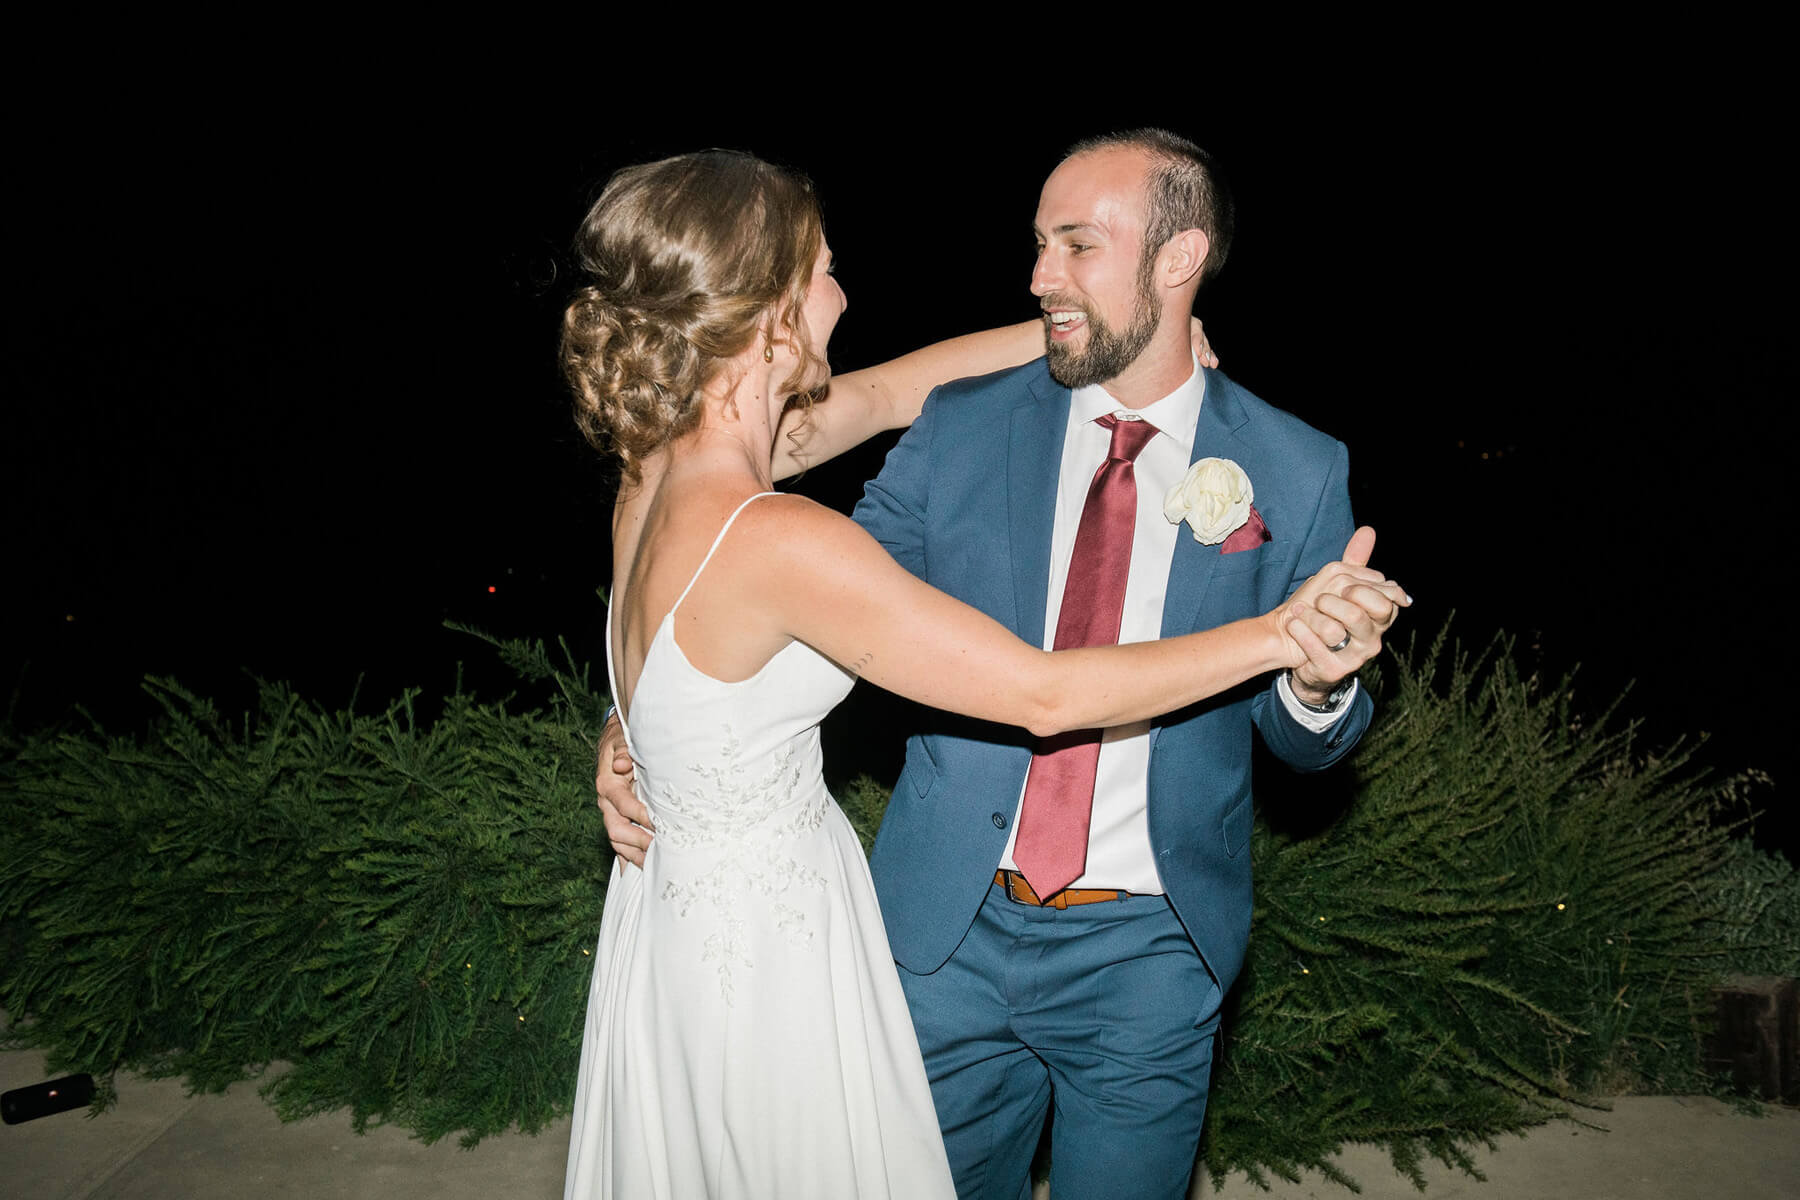 bride and groom doing first dance at intimate wedding reception in oakhurst